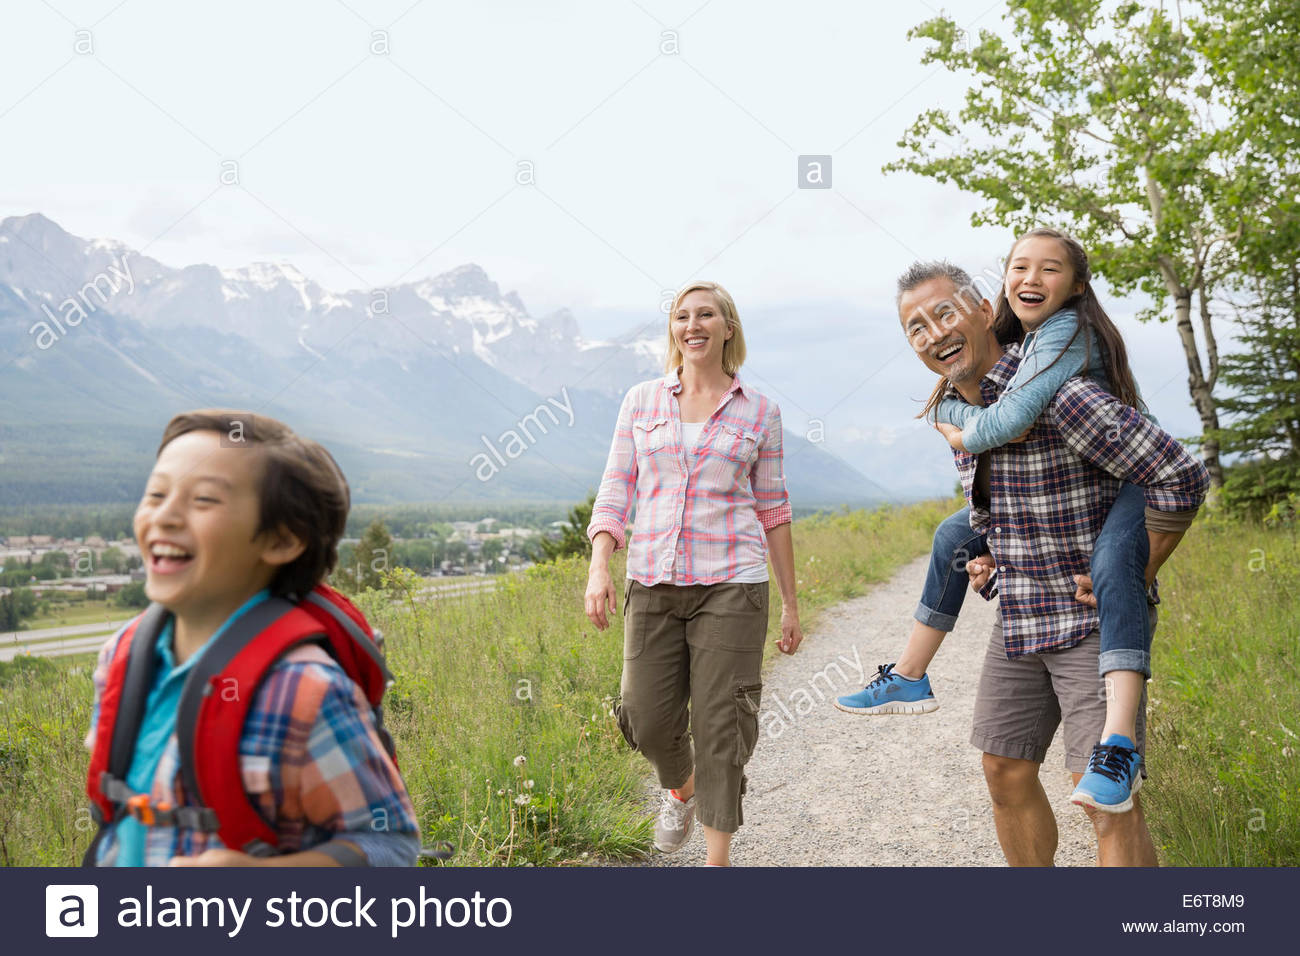 Parents and daughter walking on dirt path - Stock Image